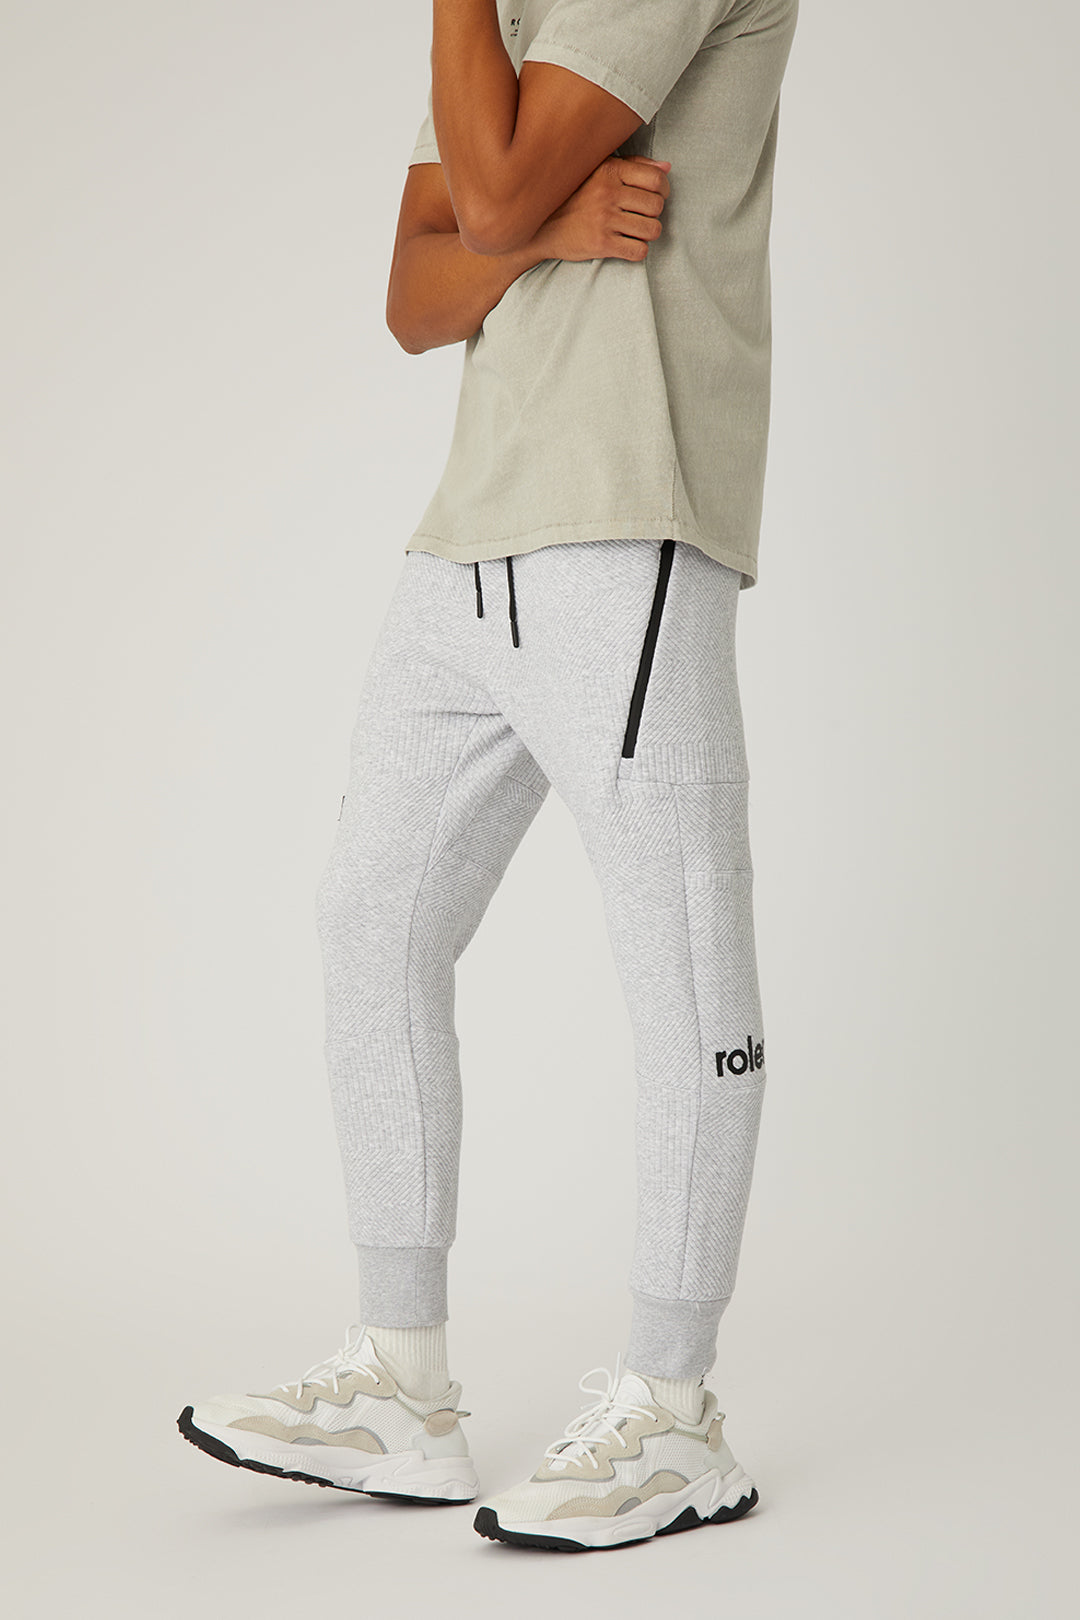 The Granville Trackie - Ice Marle